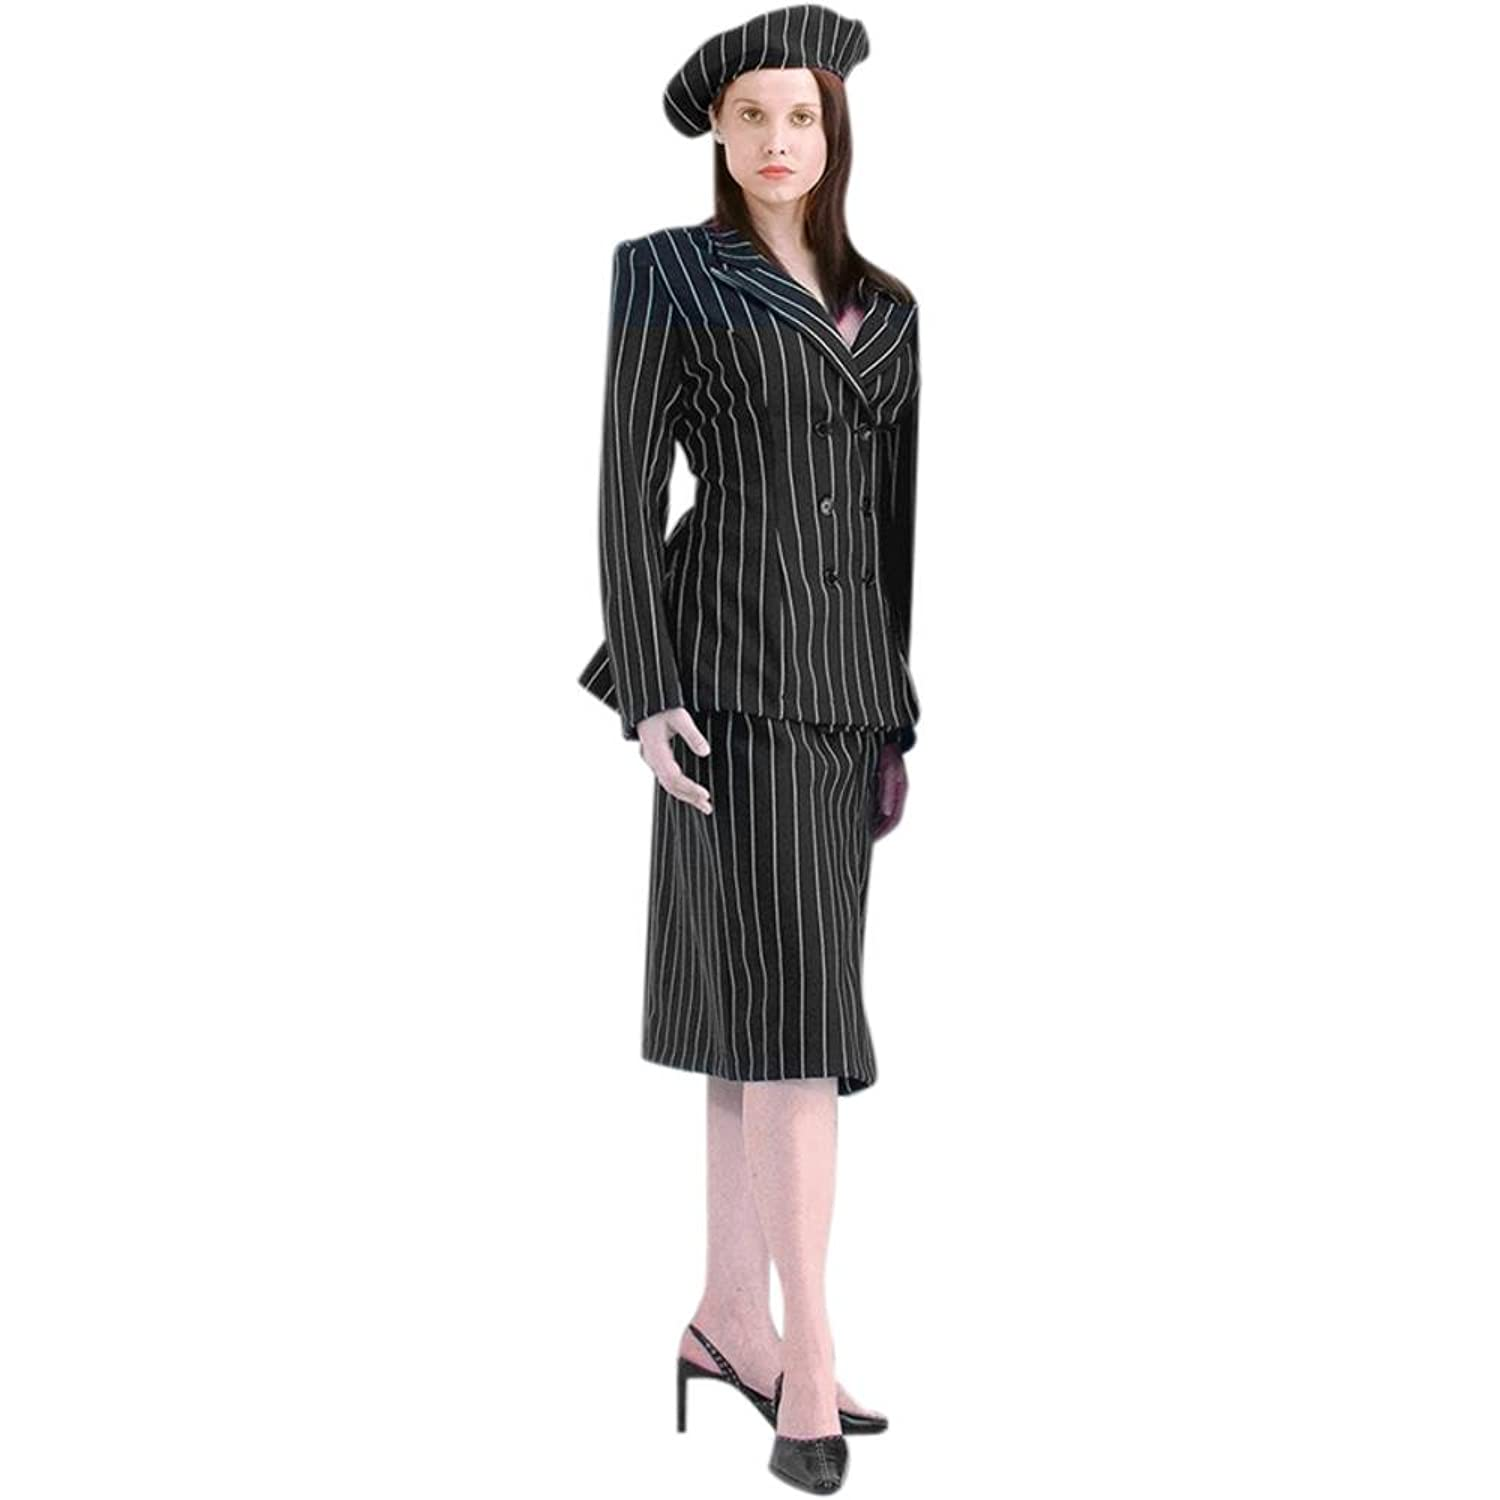 1930sStyleFashionDresses Womens Deluxe Bonnie and Clyde Costume (Large) $79.99 AT vintagedancer.com